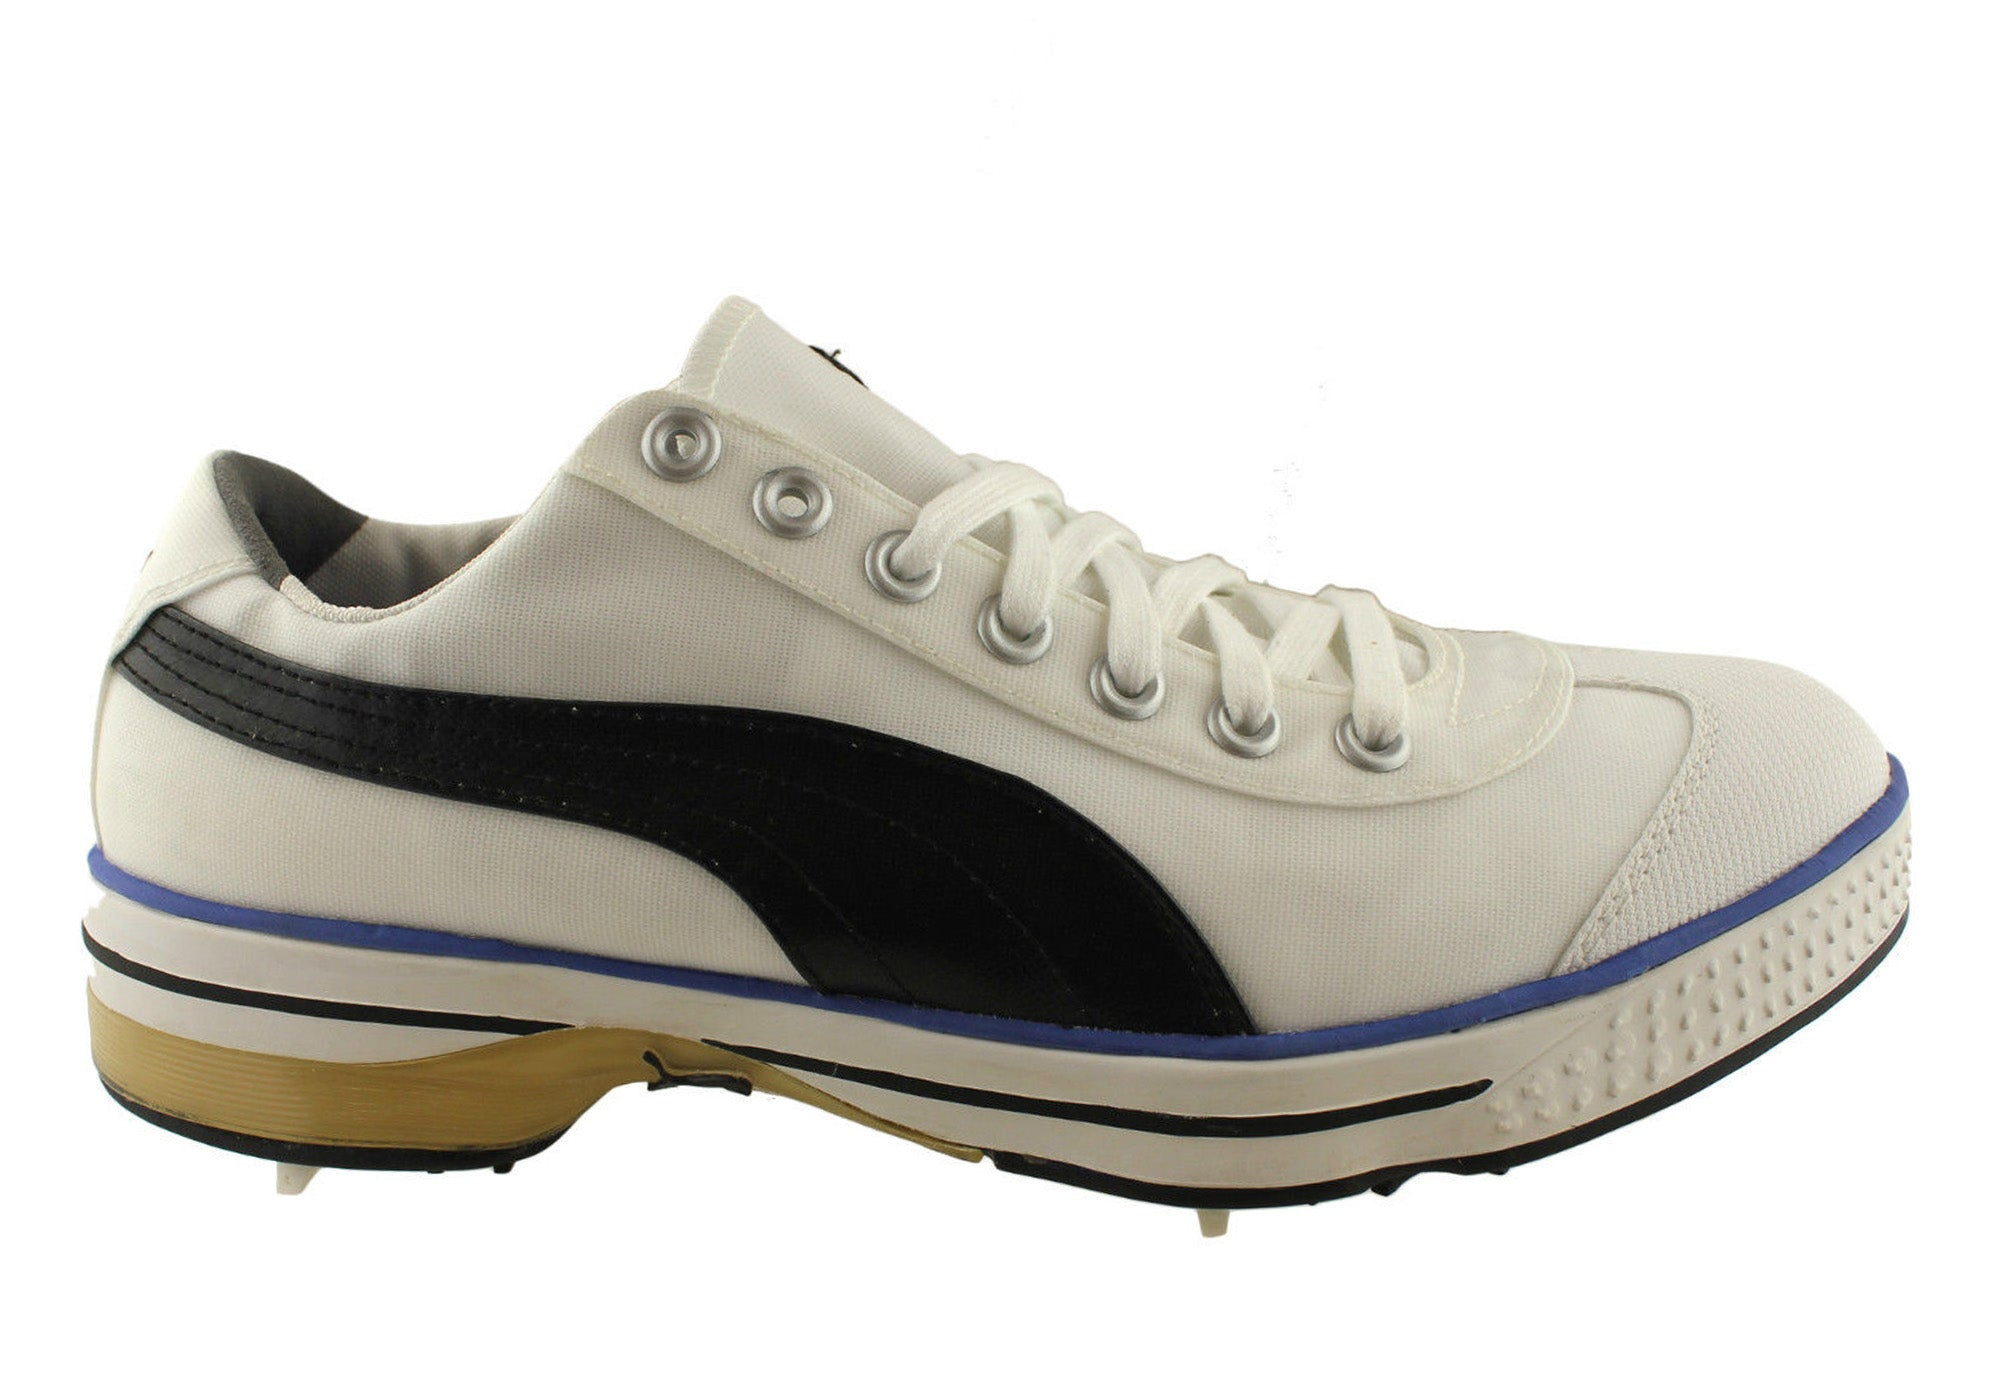 Puma Club 917 Mens Comfortable Water Resistant Golf Shoes  b64064038